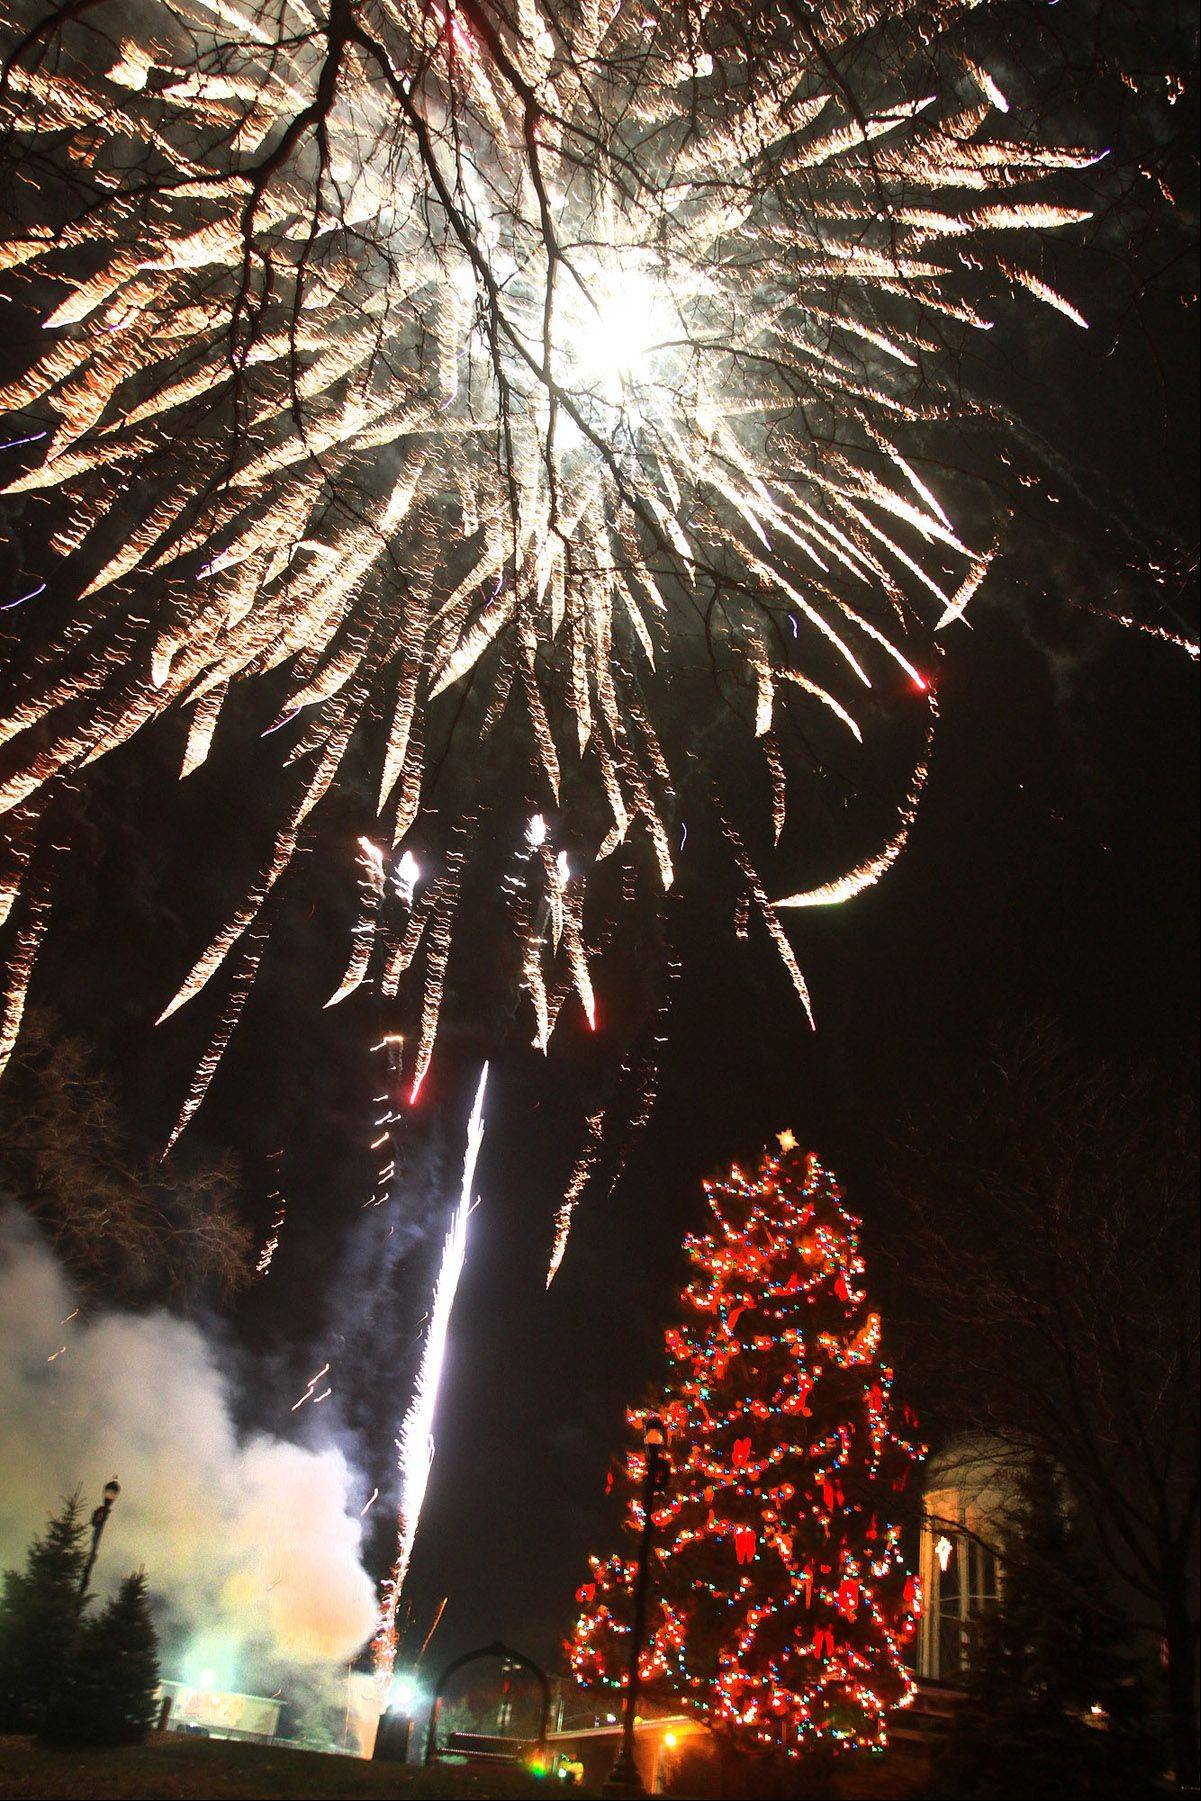 About 400 watched a ten-minute firework show following the Mundelein annual holiday tree lighting and visit from Santa Claus at Kracklauer Park in Mundelein on Friday.